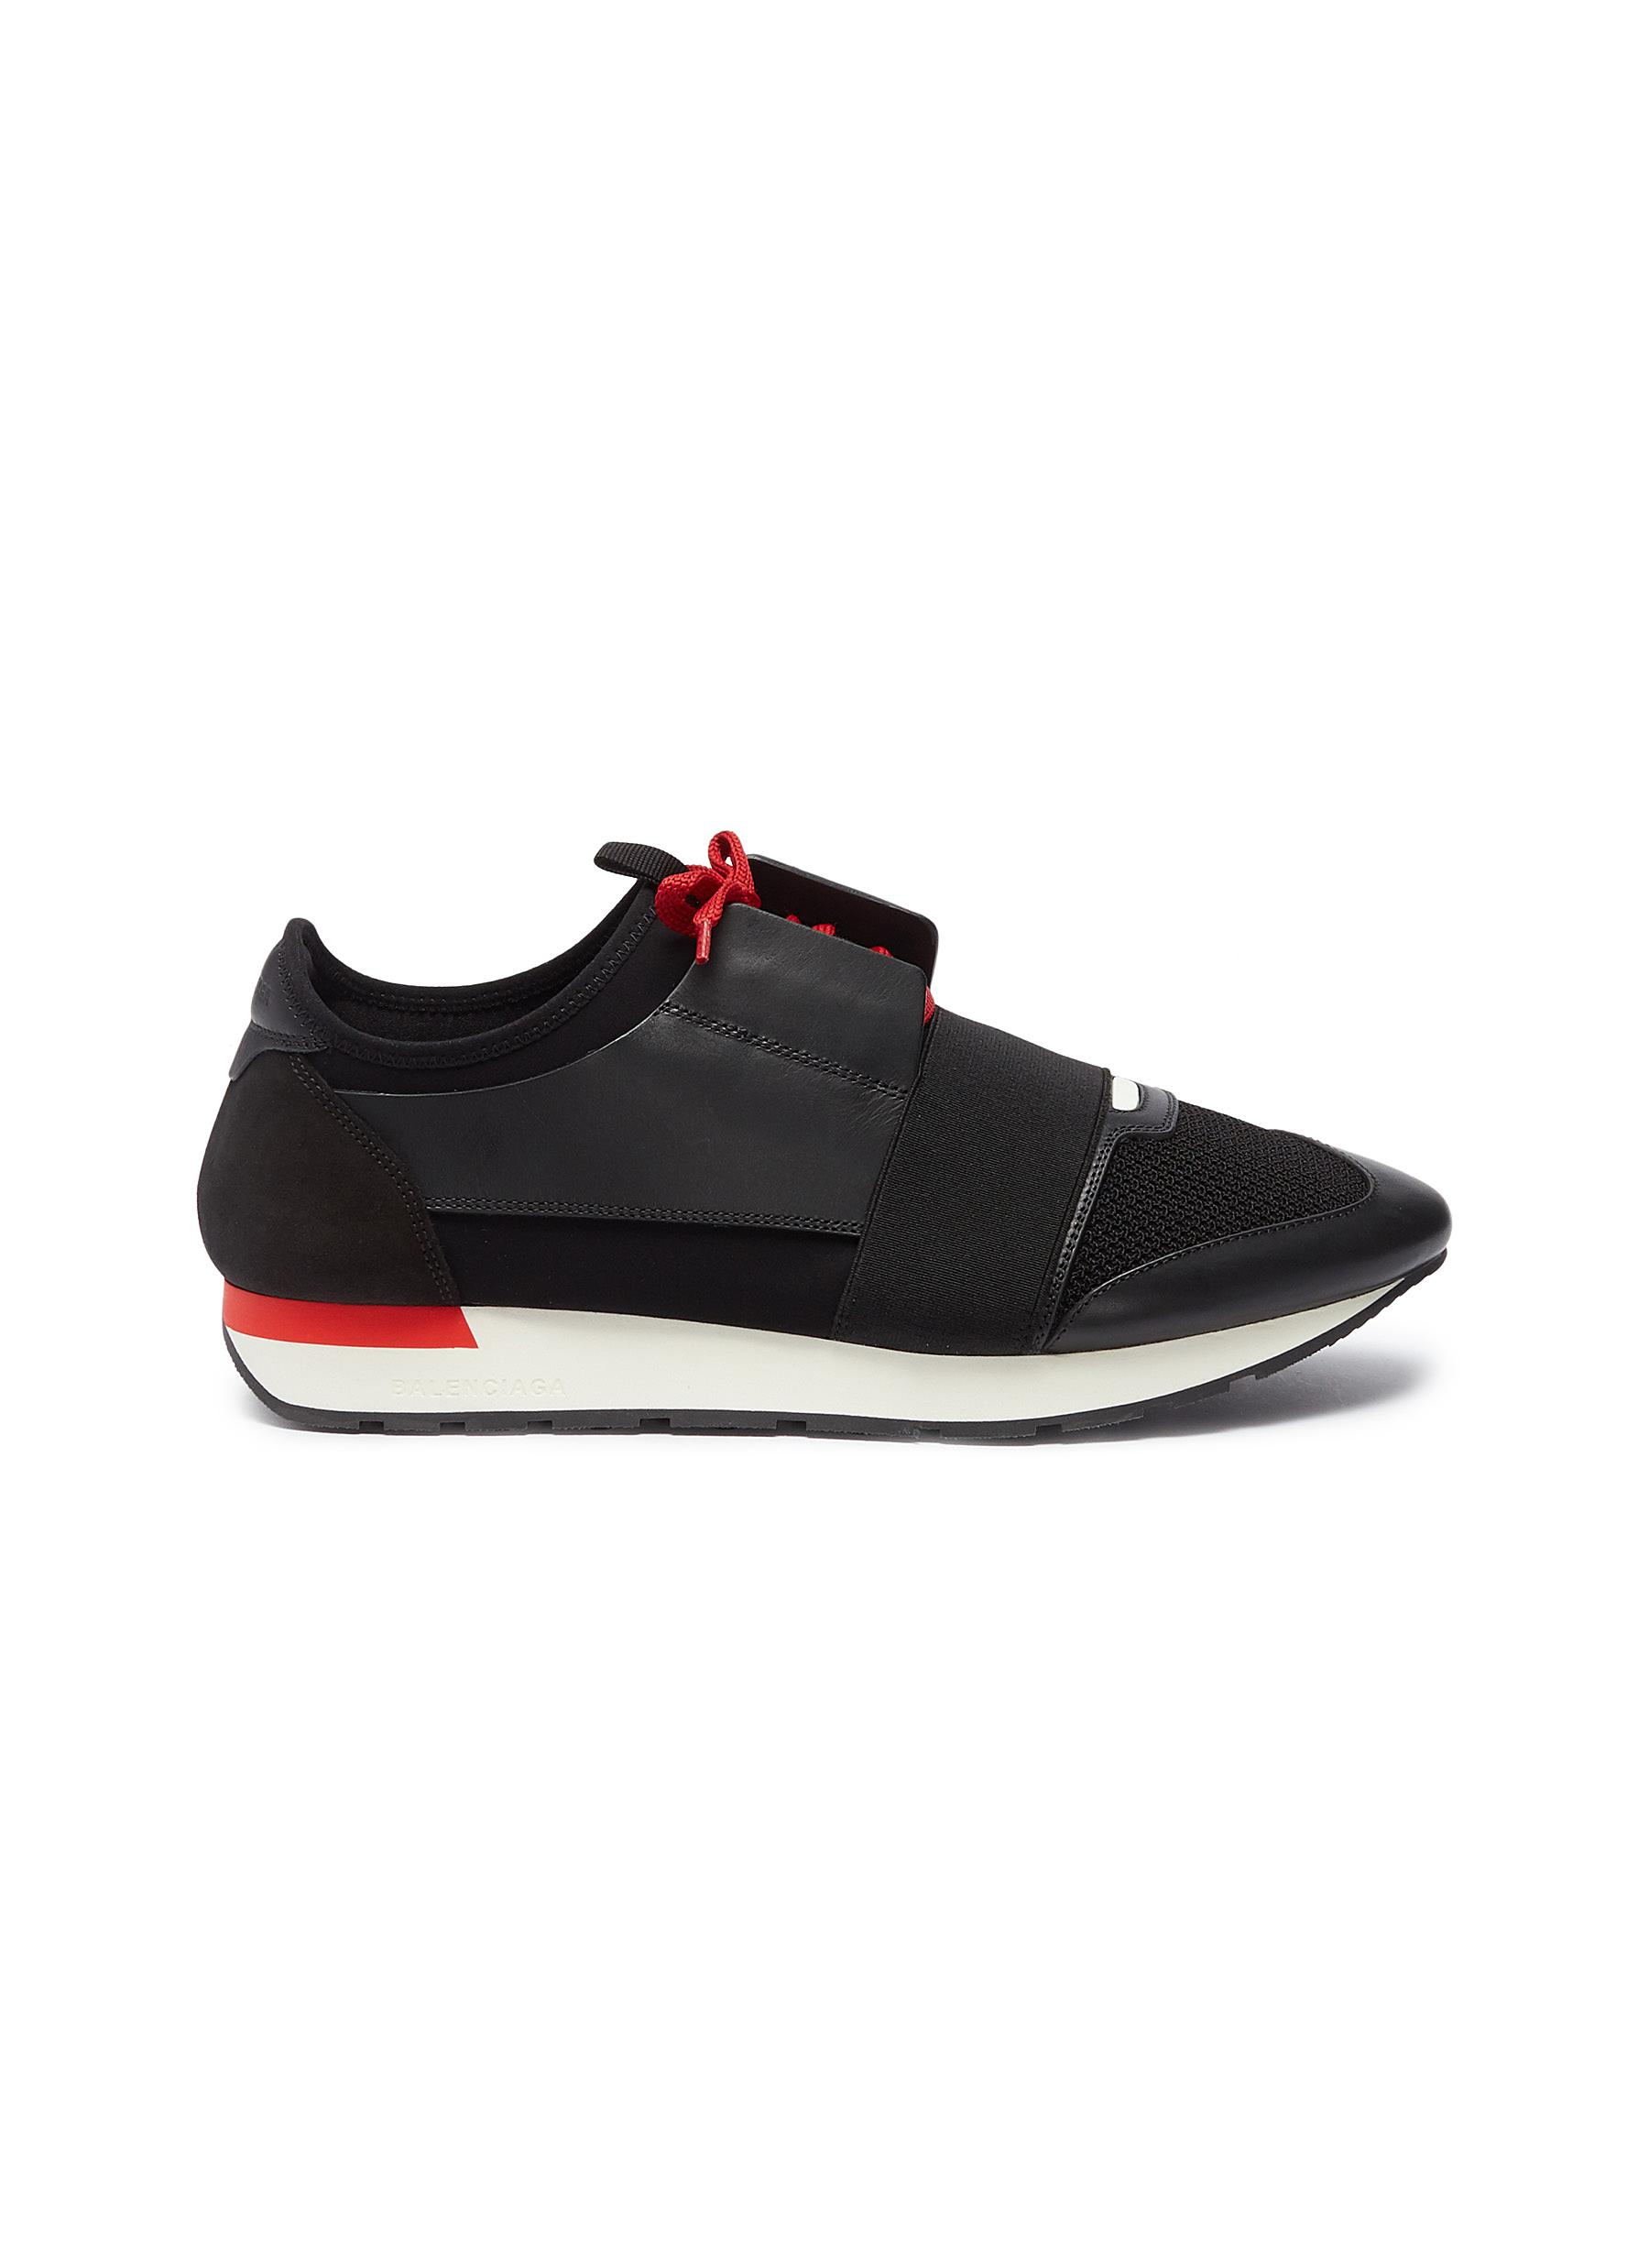 Balenciaga Mens Black And Red Striped Capsule Race Runners Leather And Suede Sneakers